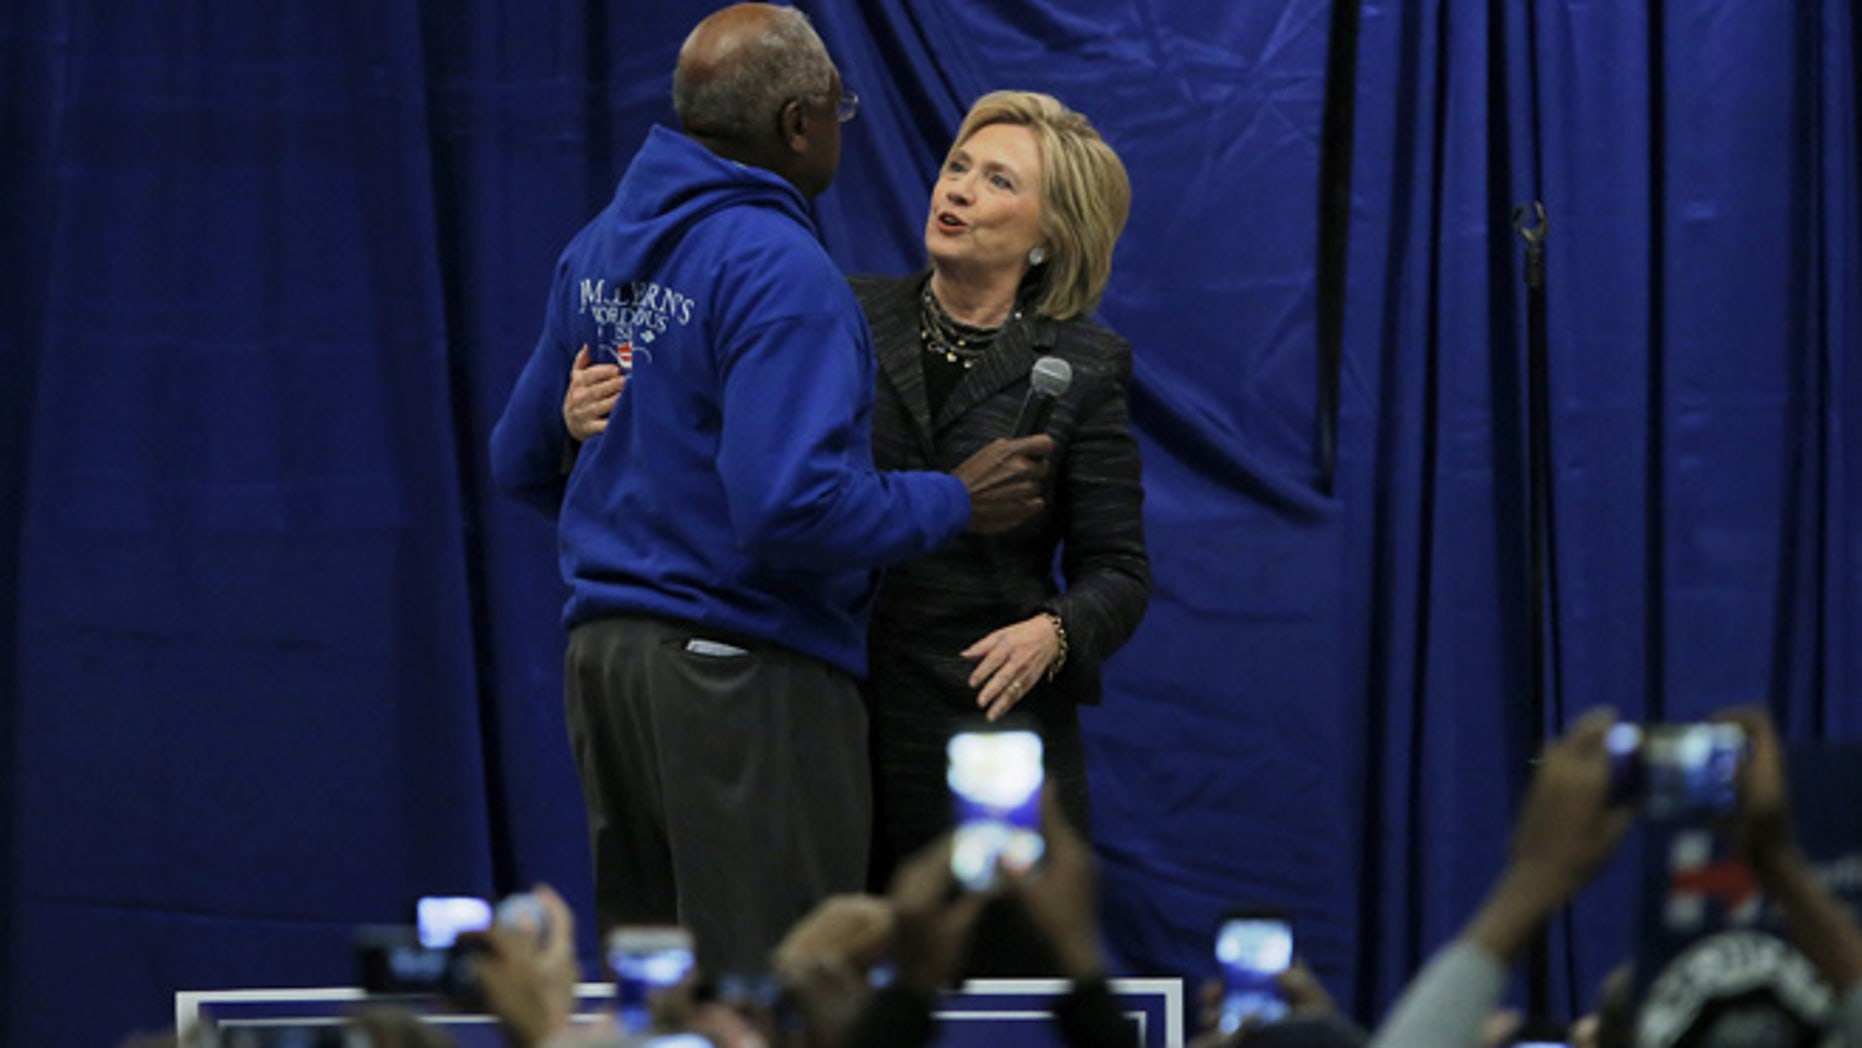 U.S. Democratic presidential candidate Hillary Clinton shares a hug with U.S. Representative Jim Clyburn on stage during Jim Clyburn's Annual Fish Fry in Charleston, South Carolina January 16, 2016. REUTERS/Chris Keane - RTX22PQY